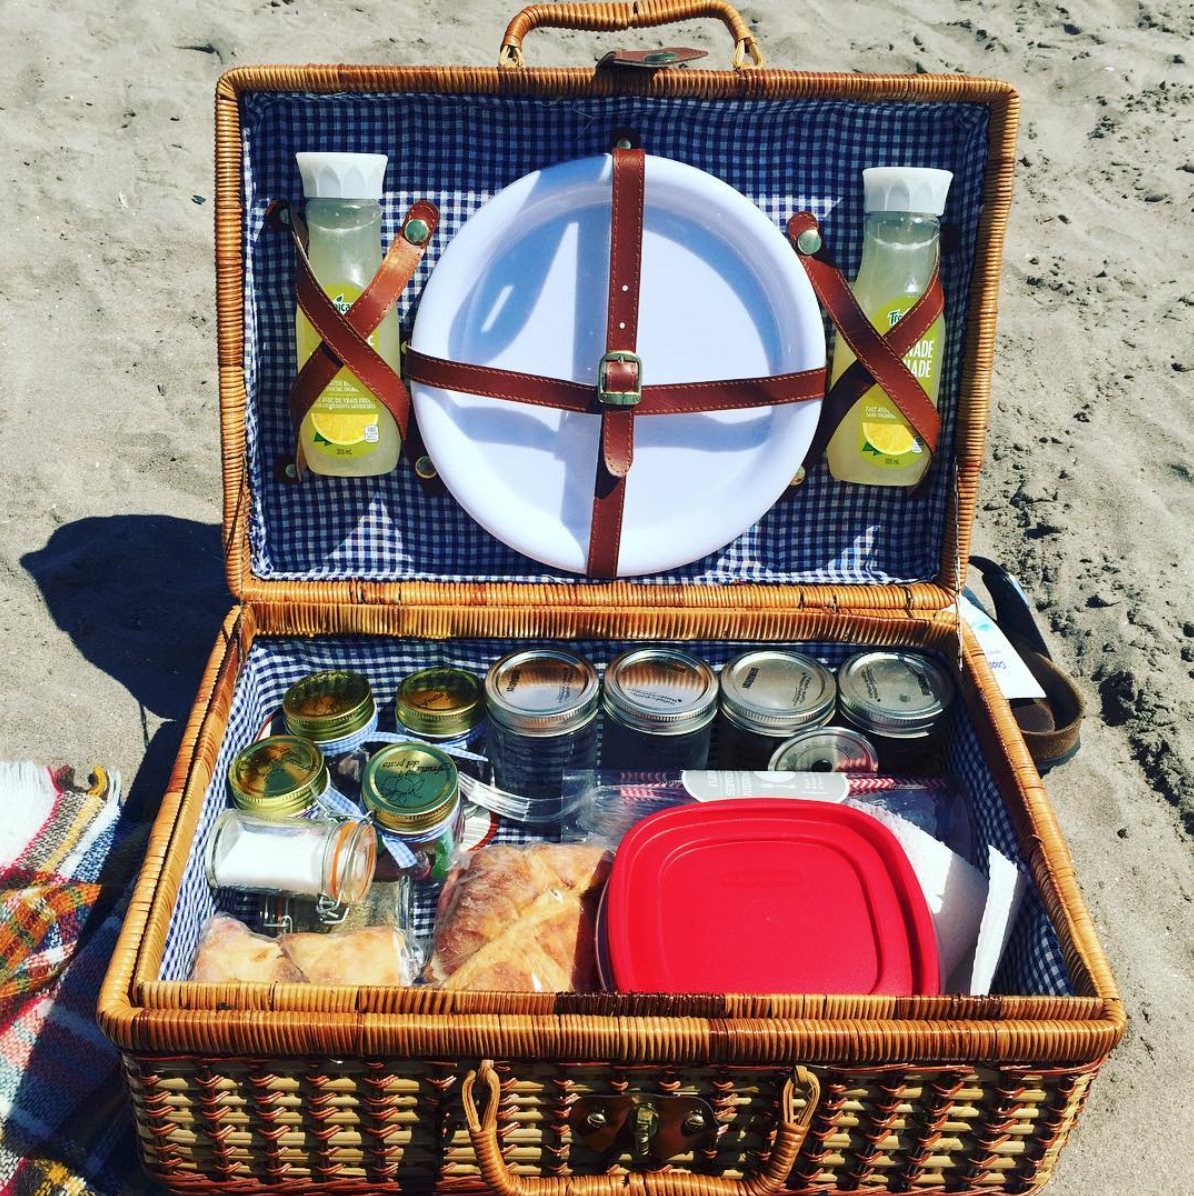 Romantic Picnic at Cobourg Beach